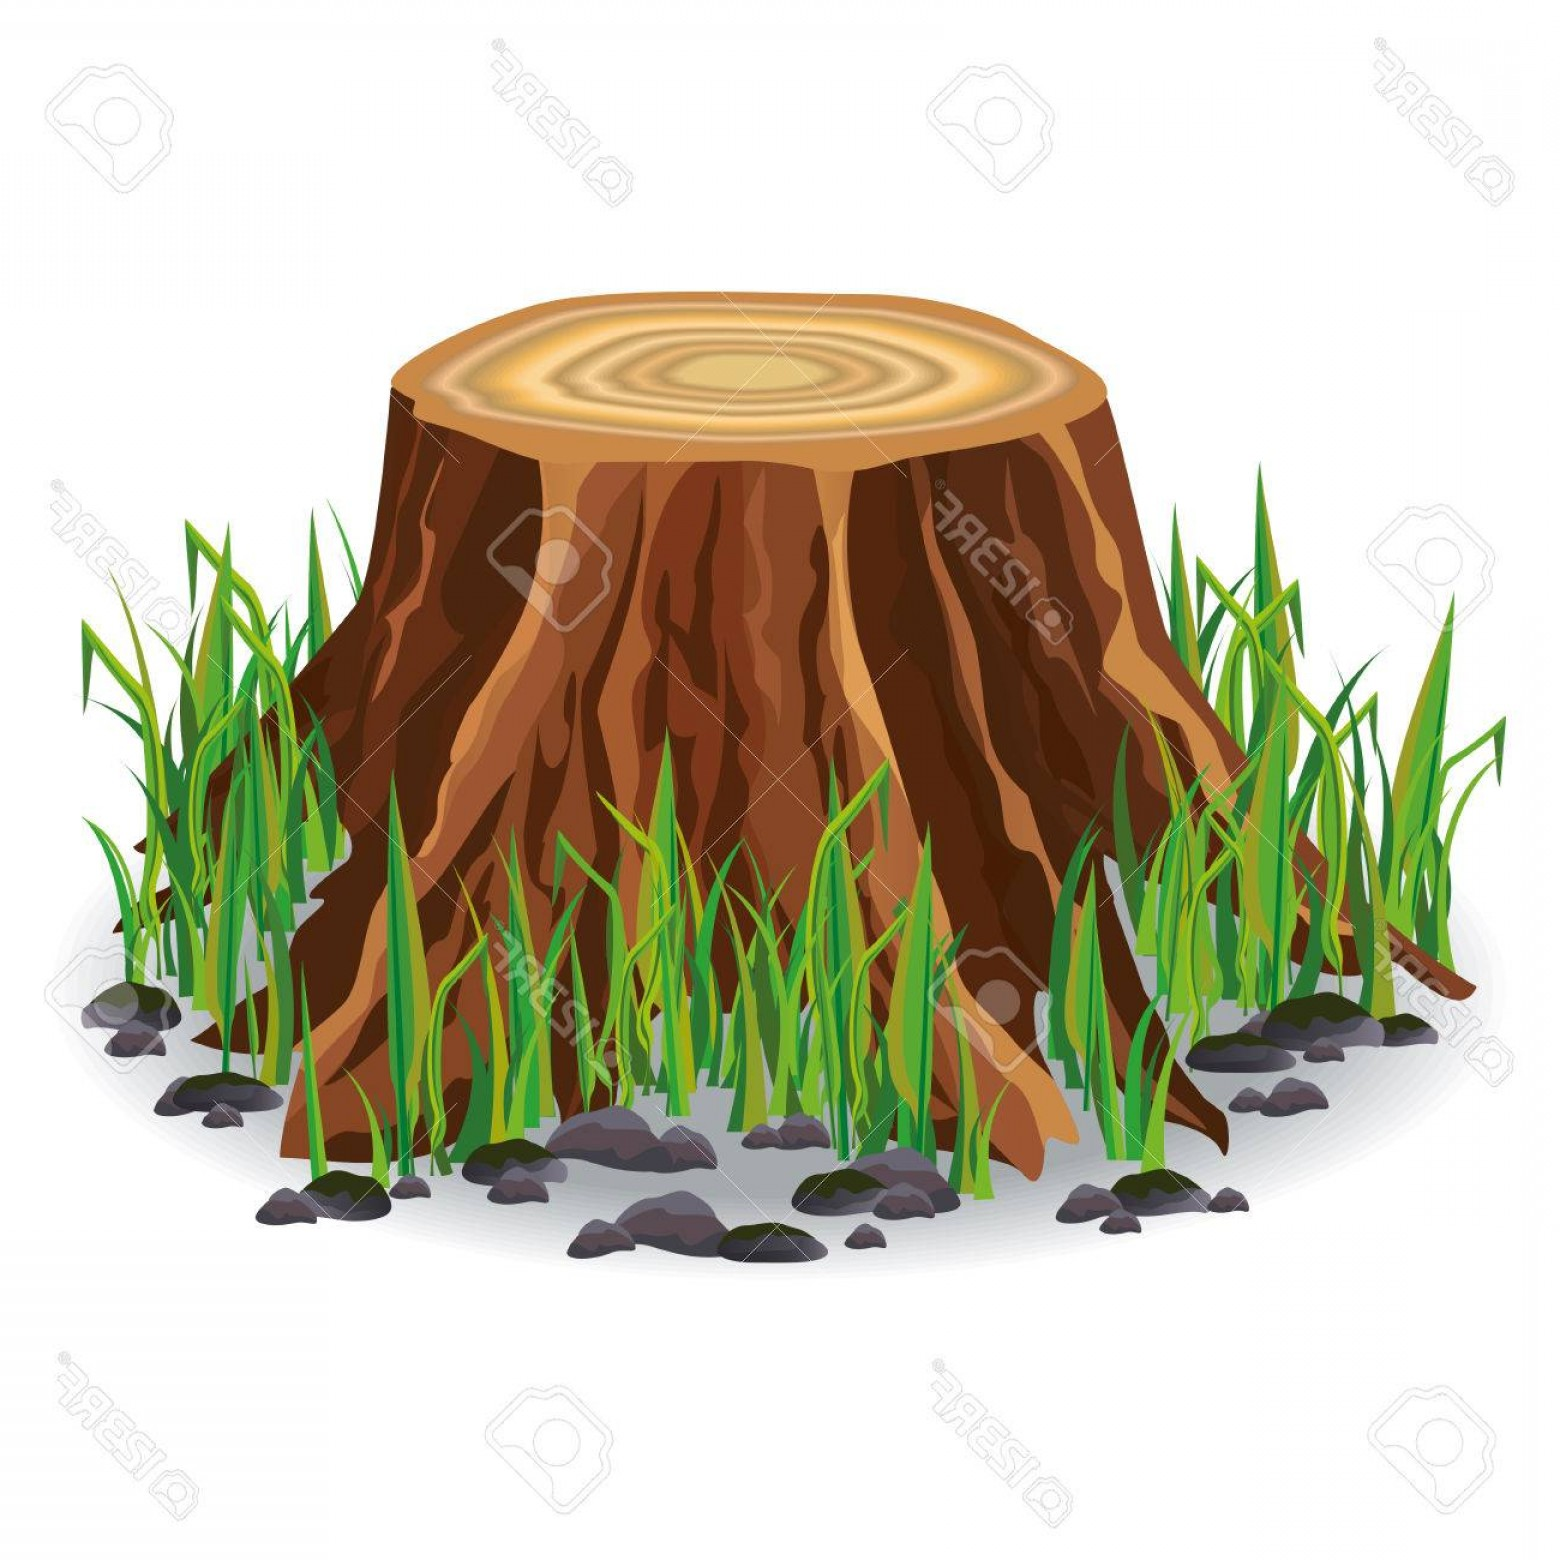 Stump clipart vector svg freeuse Photostock Vector Realistic Tree Stump With Fresh Green ... svg freeuse